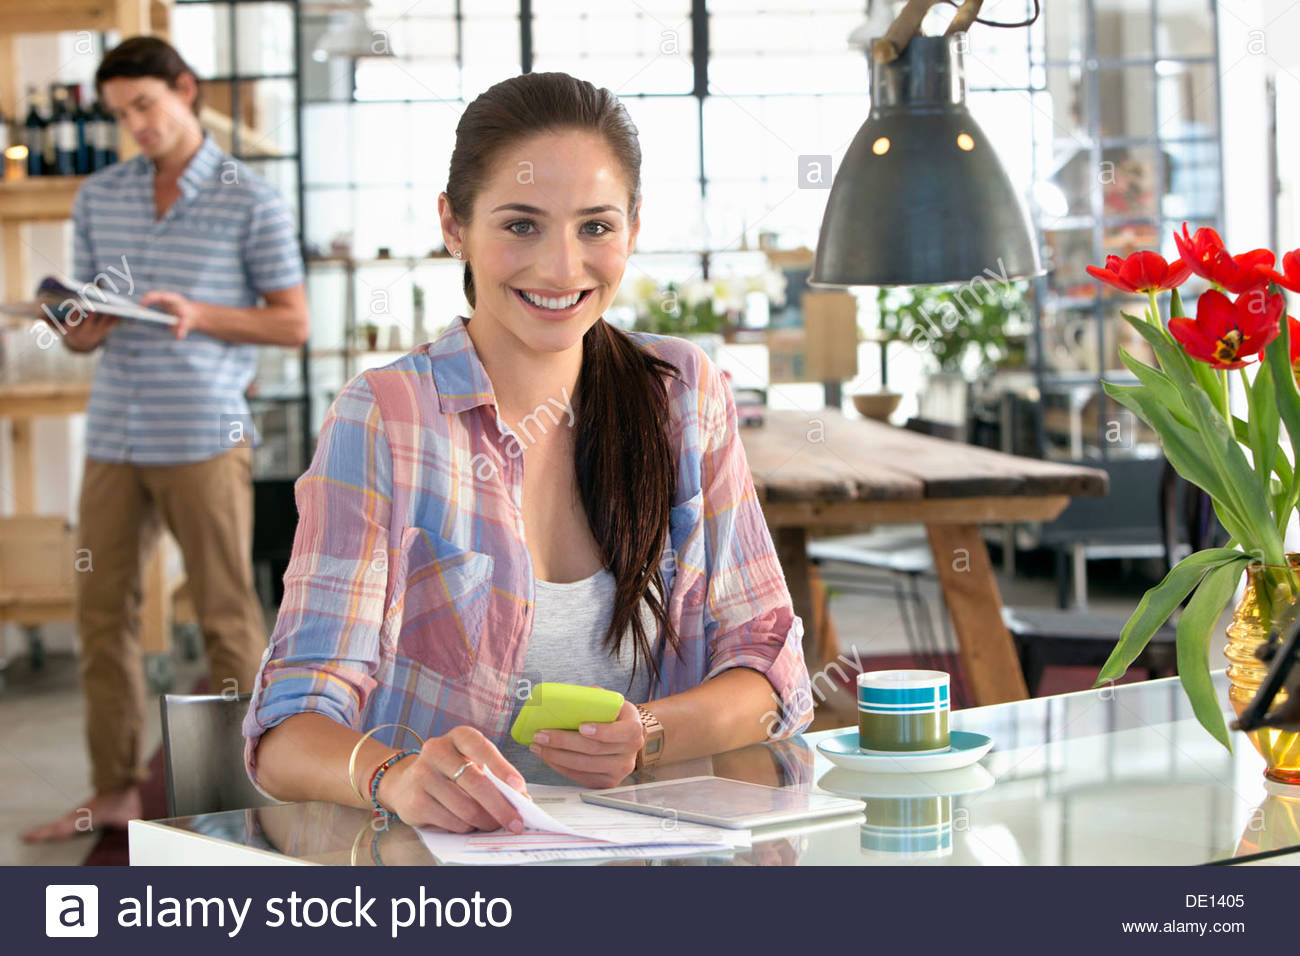 Portrait of smiling woman with cell phone and paperwork at kitchen table - Stock Image